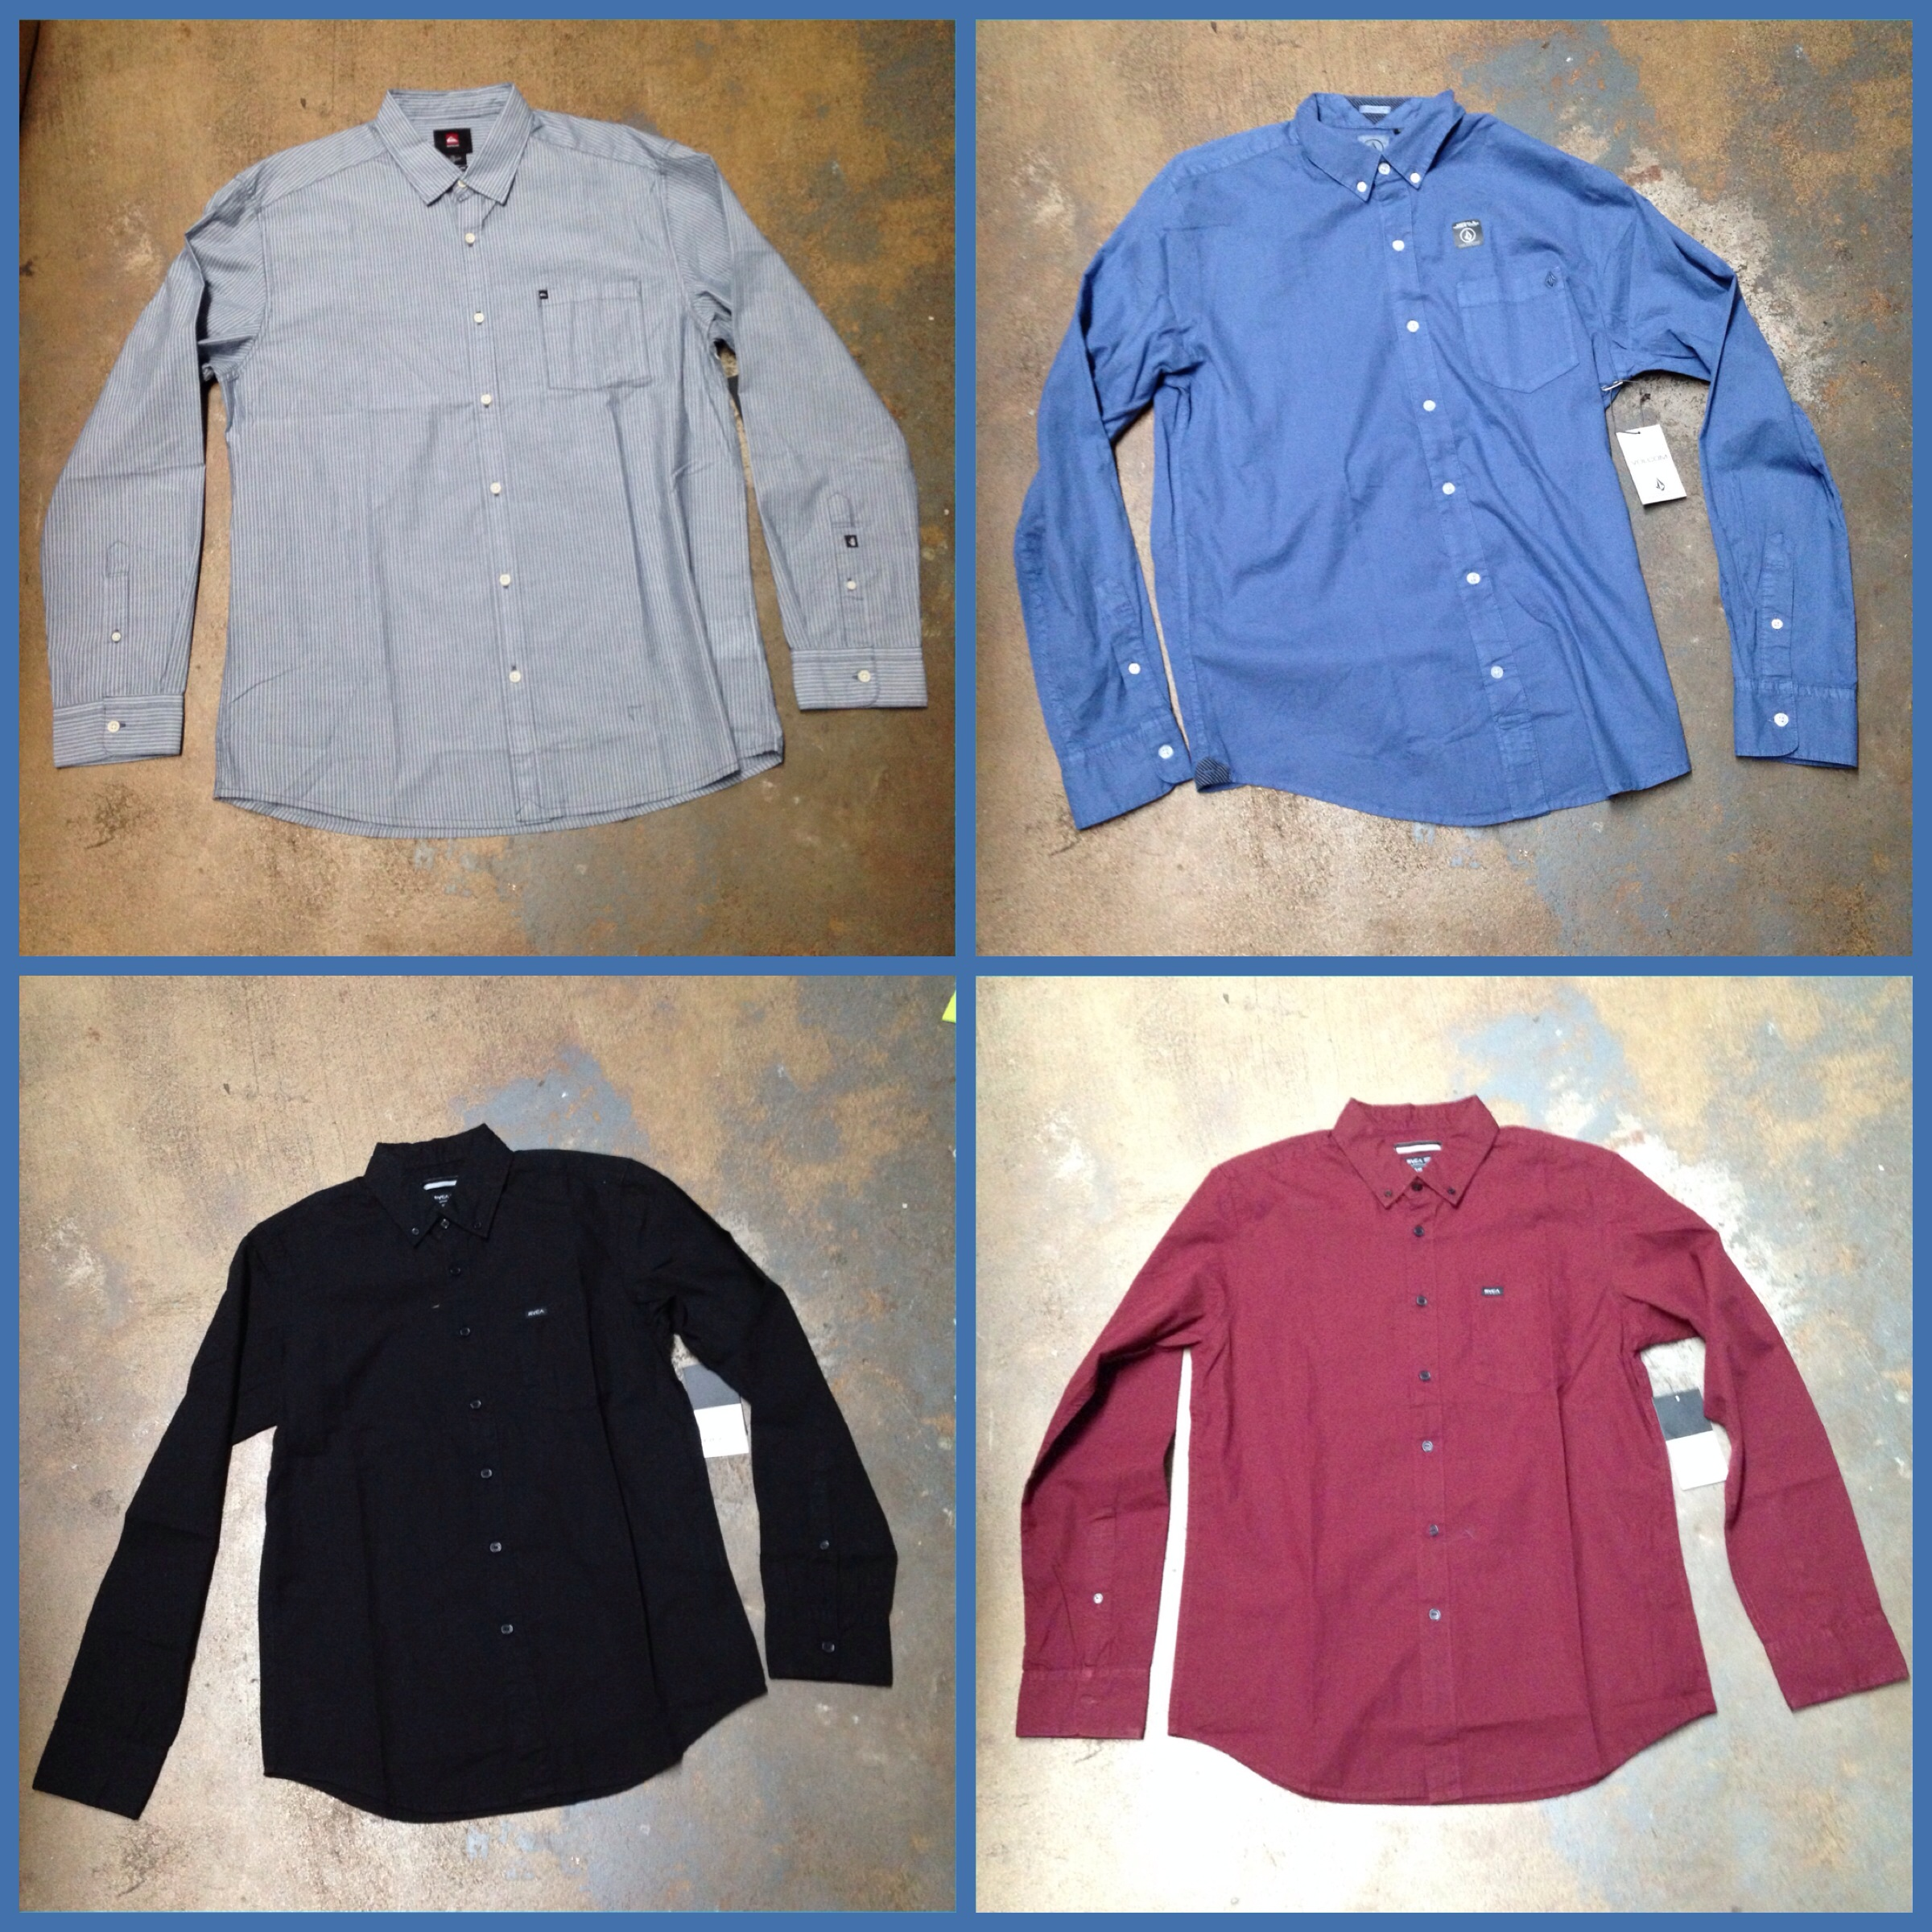 Shirts from Volcom, Quiksilver, and RVCA